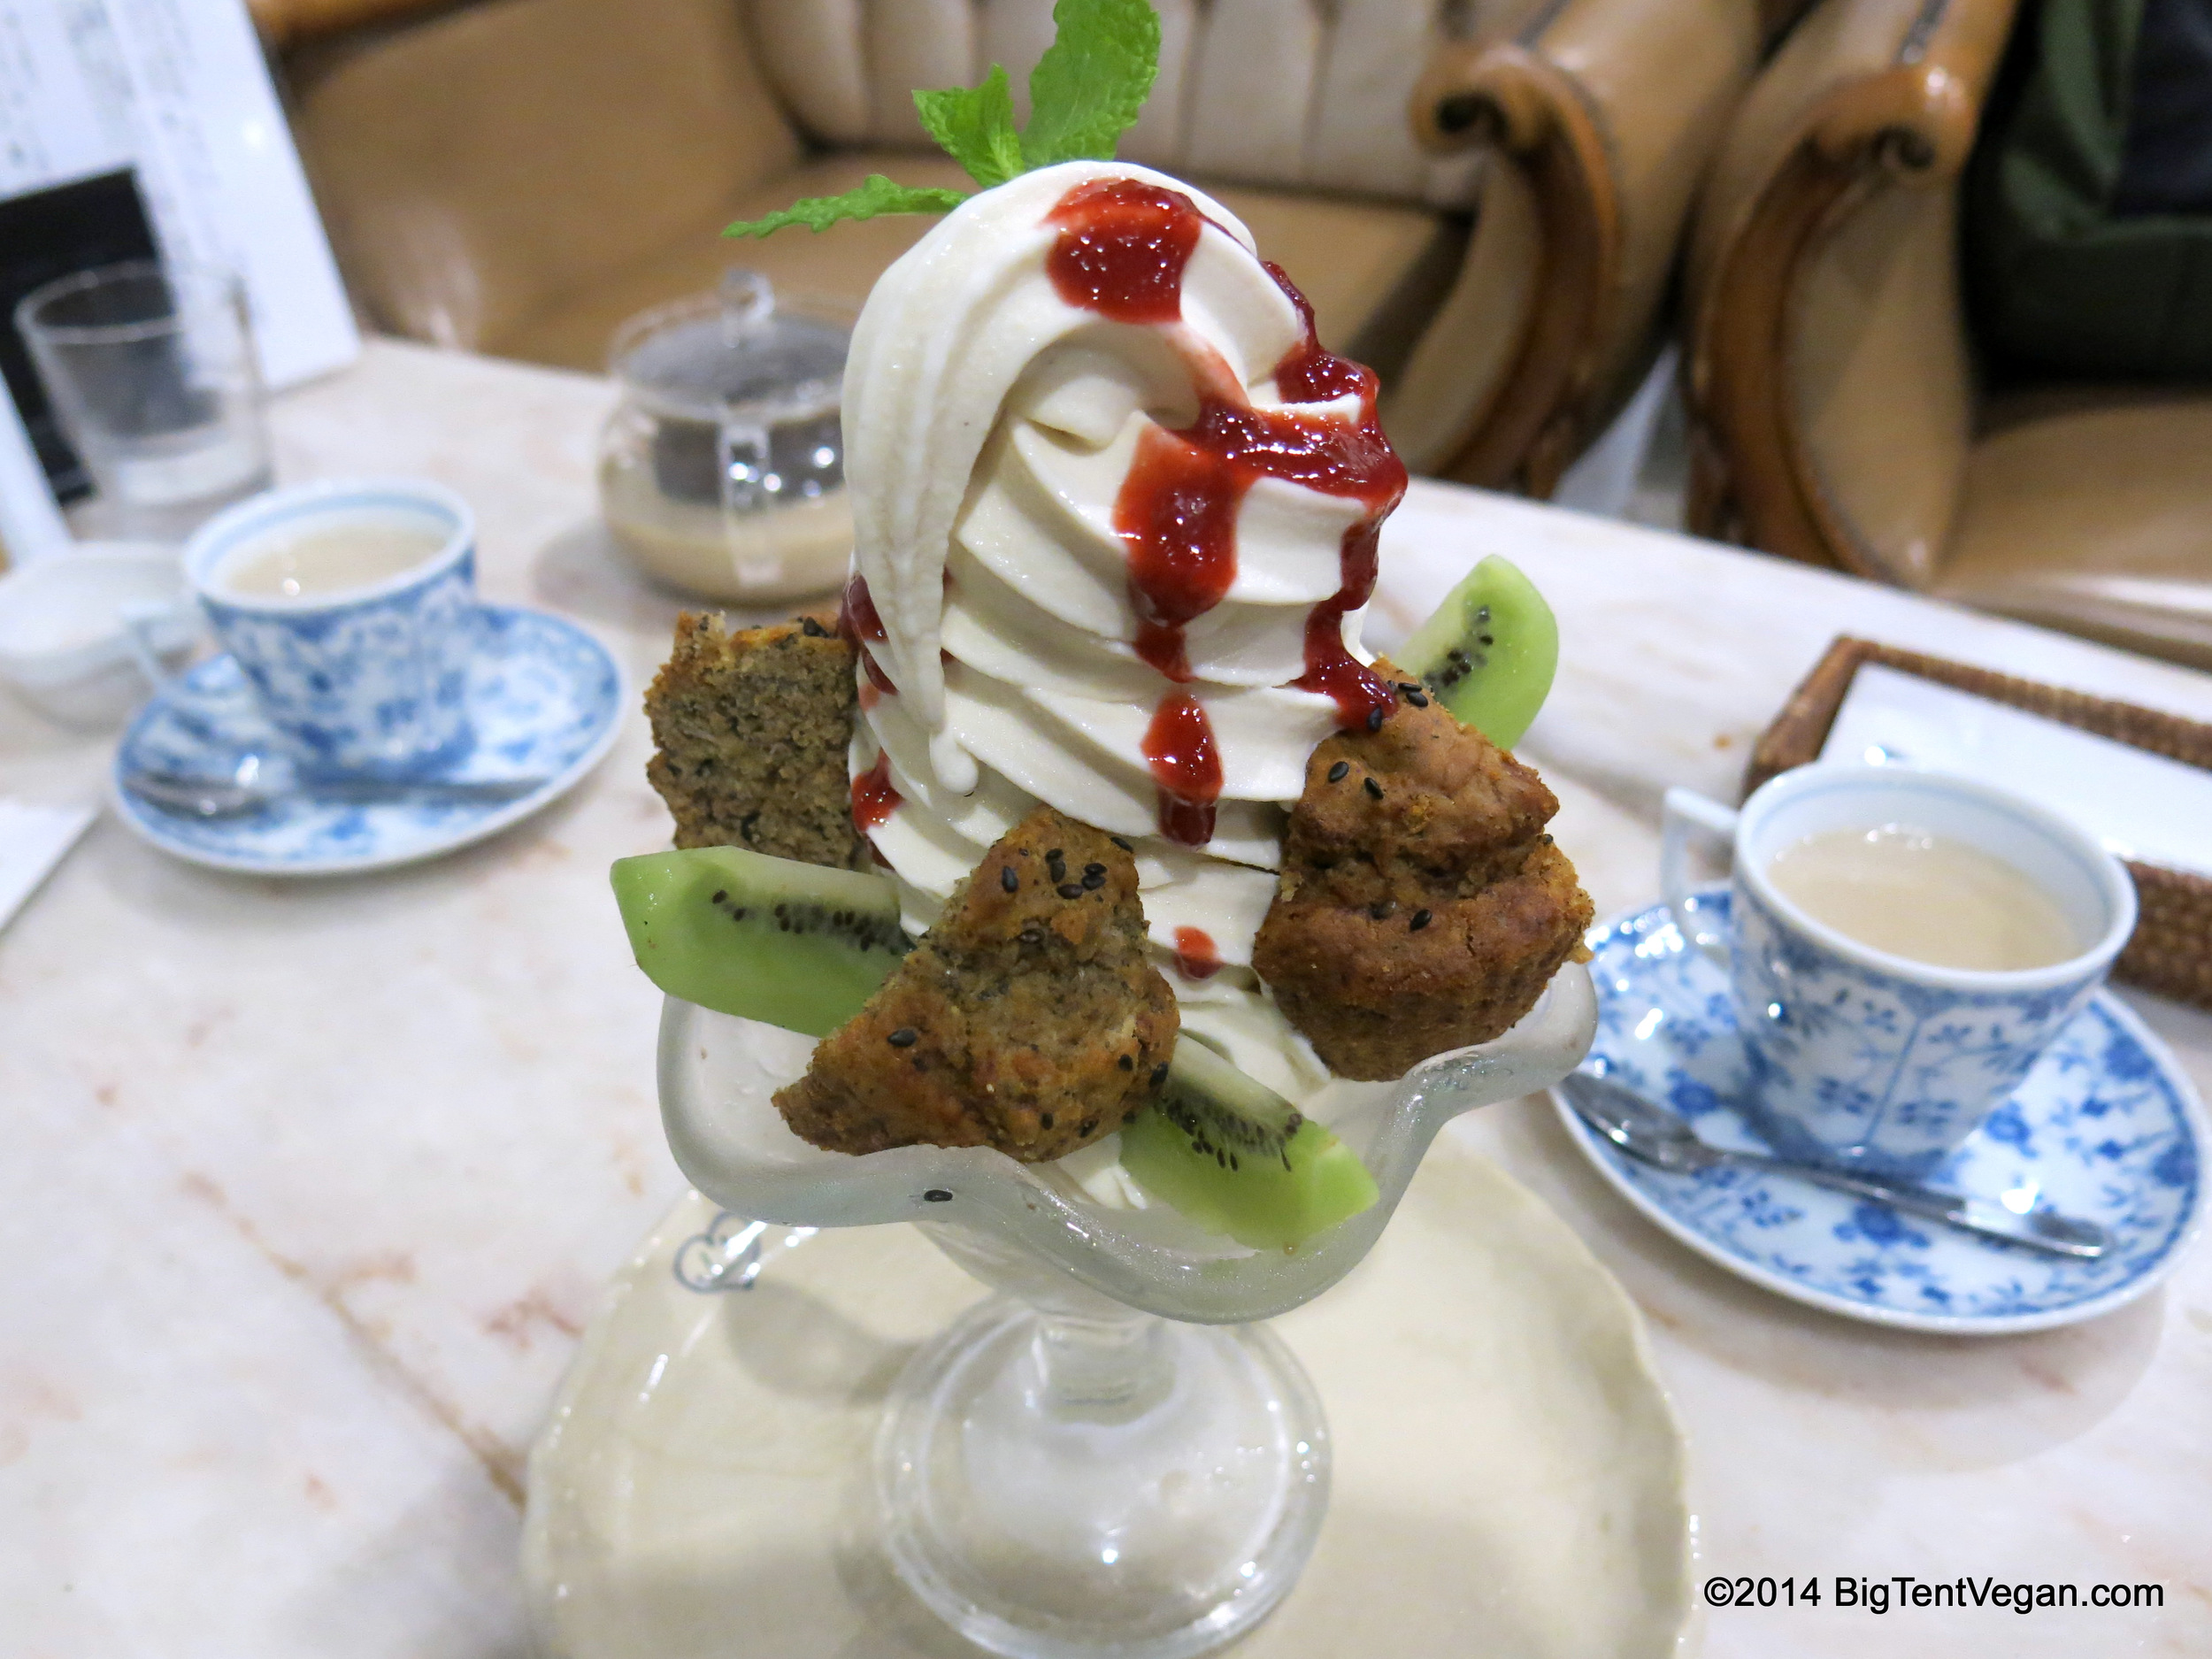 """Soy Soft Cream Parfait with Strawberry Sauce, Banana Muffin, and Fresh Kiwi from 100% vegan Vegans Caf       12.00       é       Normal   0           false   false   false     EN-US   X-NONE   X-NONE                                        MicrosoftInternetExplorer4                                                                                                                                                                                                                                                                                                                                            /* Style Definitions */  table.MsoNormalTable {mso-style-name:""""Table Normal""""; mso-tstyle-rowband-size:0; mso-tstyle-colband-size:0; mso-style-noshow:yes; mso-style-priority:99; mso-style-qformat:yes; mso-style-parent:""""""""; mso-padding-alt:0in 5.4pt 0in 5.4pt; mso-para-margin-top:0in; mso-para-margin-right:0in; mso-para-margin-bottom:10.0pt; mso-para-margin-left:0in; line-height:115%; mso-pagination:widow-orphan; font-size:11.0pt; font-family:""""Calibri"""",""""sans-serif""""; mso-ascii-font-family:Calibri; mso-ascii-theme-font:minor-latin; mso-fareast-font-family:""""Times New Roman""""; mso-fareast-theme-font:minor-fareast; mso-hansi-font-family:Calibri; mso-hansi-theme-font:minor-latin;}     and Restaurant in Kyoto, Japan"""